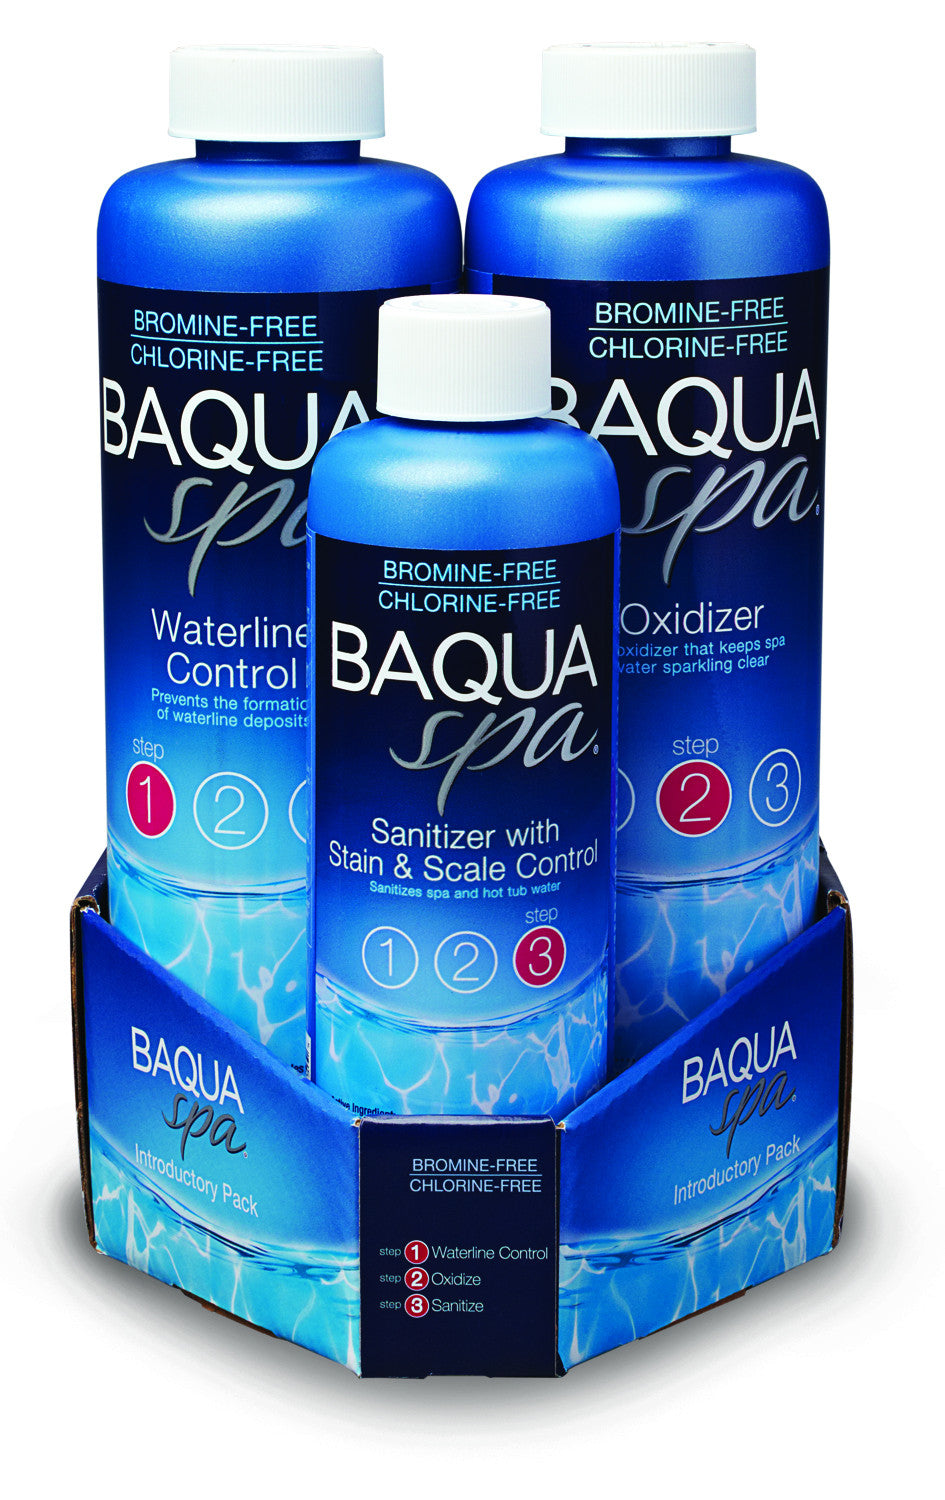 Baqua Spa 3 Part Pack